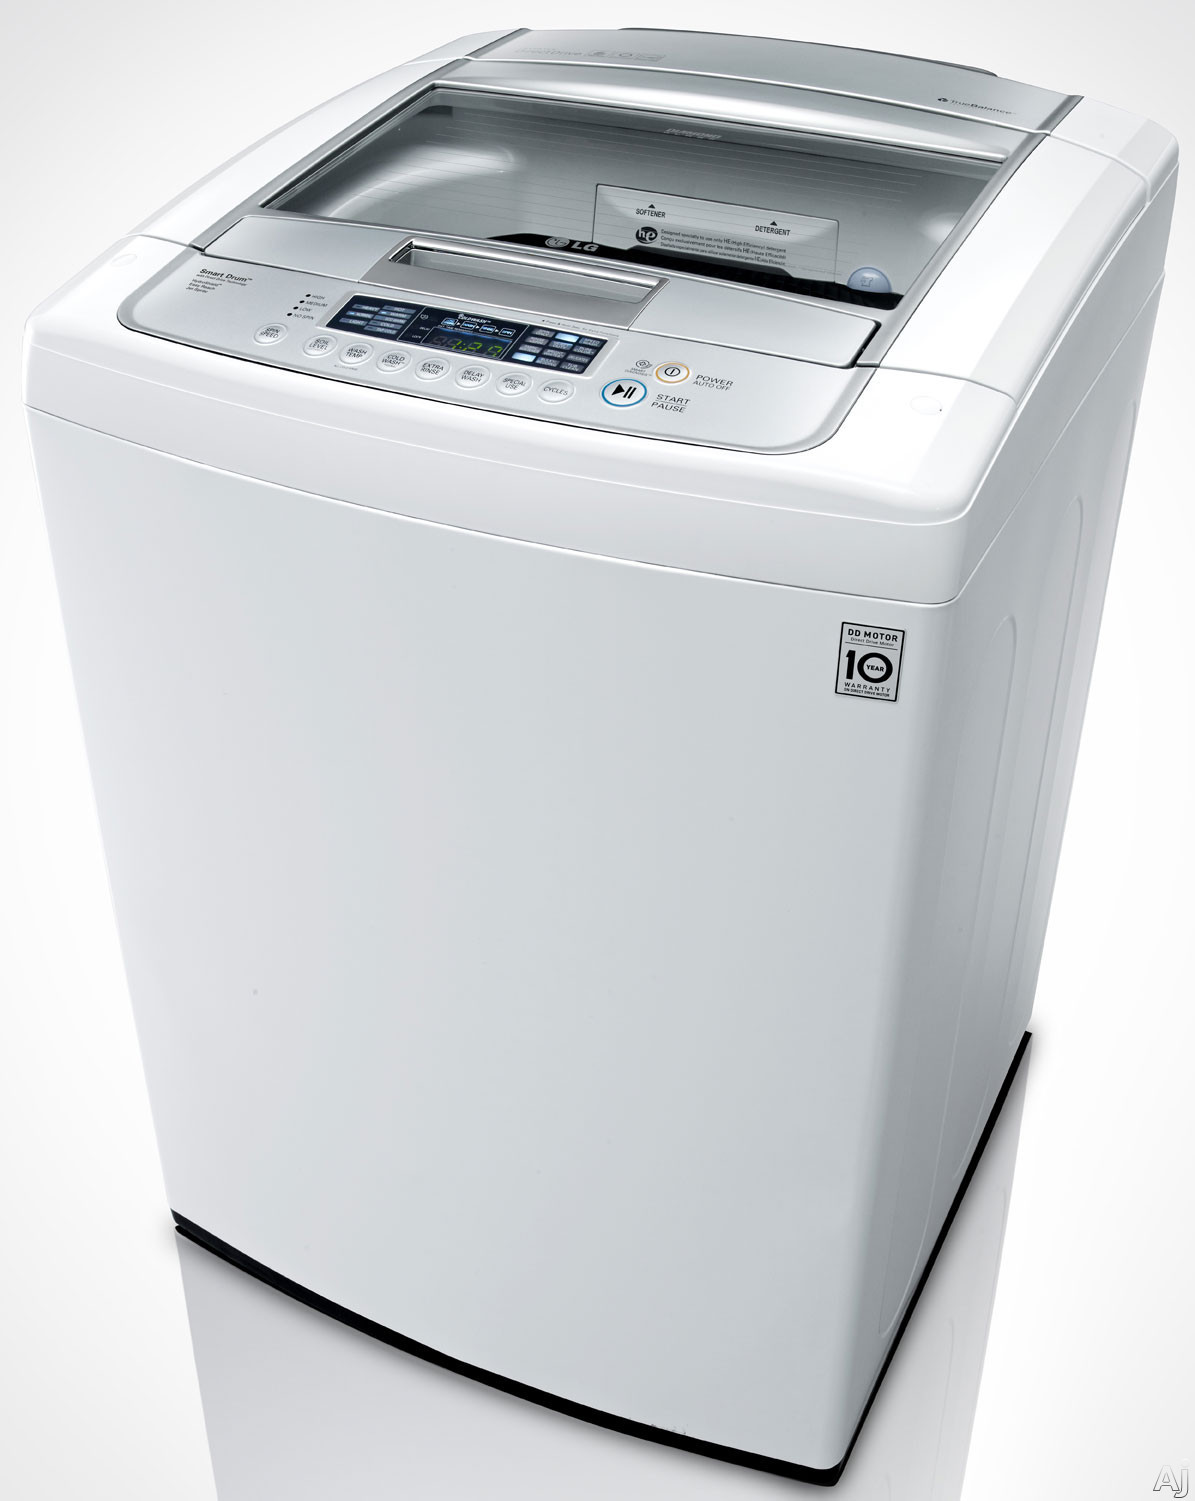 lg wt1201cw 27 top load washer with 4 5 cu ft capacity 8 wash programs 9 options 1 100 rpm. Black Bedroom Furniture Sets. Home Design Ideas